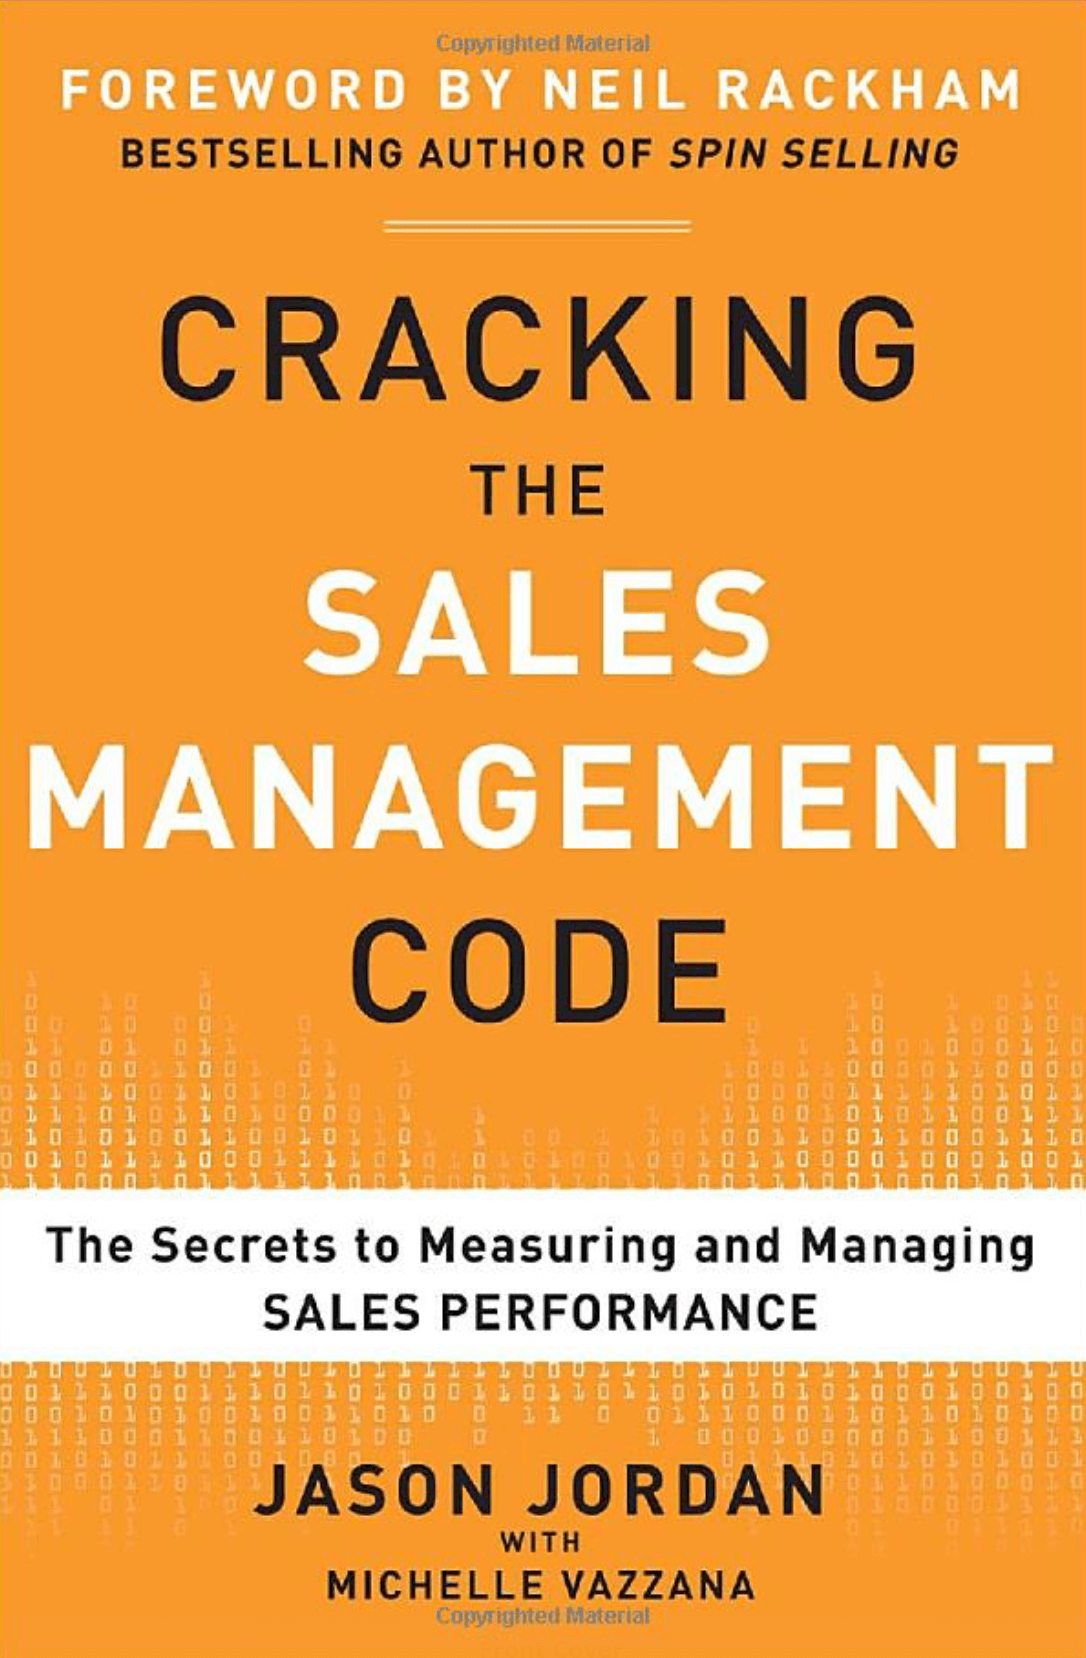 """Cracking the Sales Management Code: The Secrets to Measuring and Managing Sales Performance"" by Jason Jordan and Michelle Vazzana_Saleslabel.com"